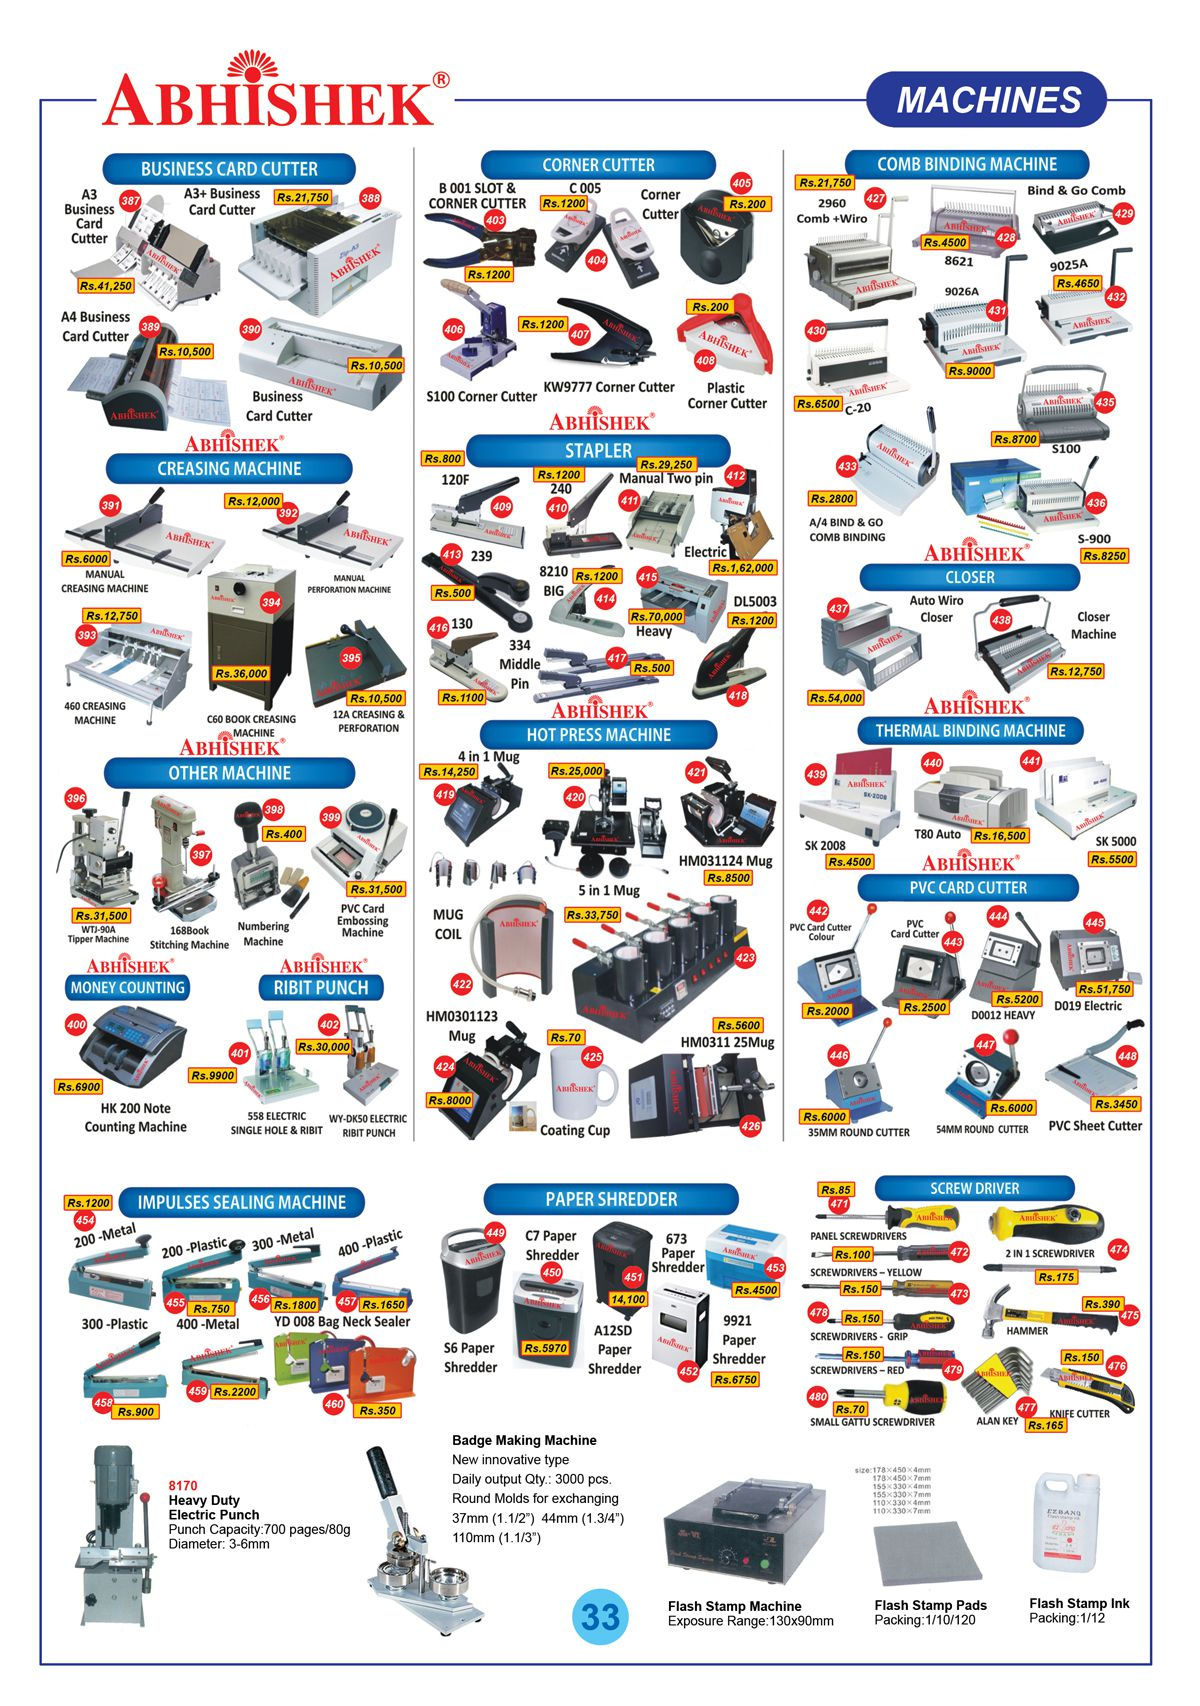 Abhishek products Catalog broucher book 2 page